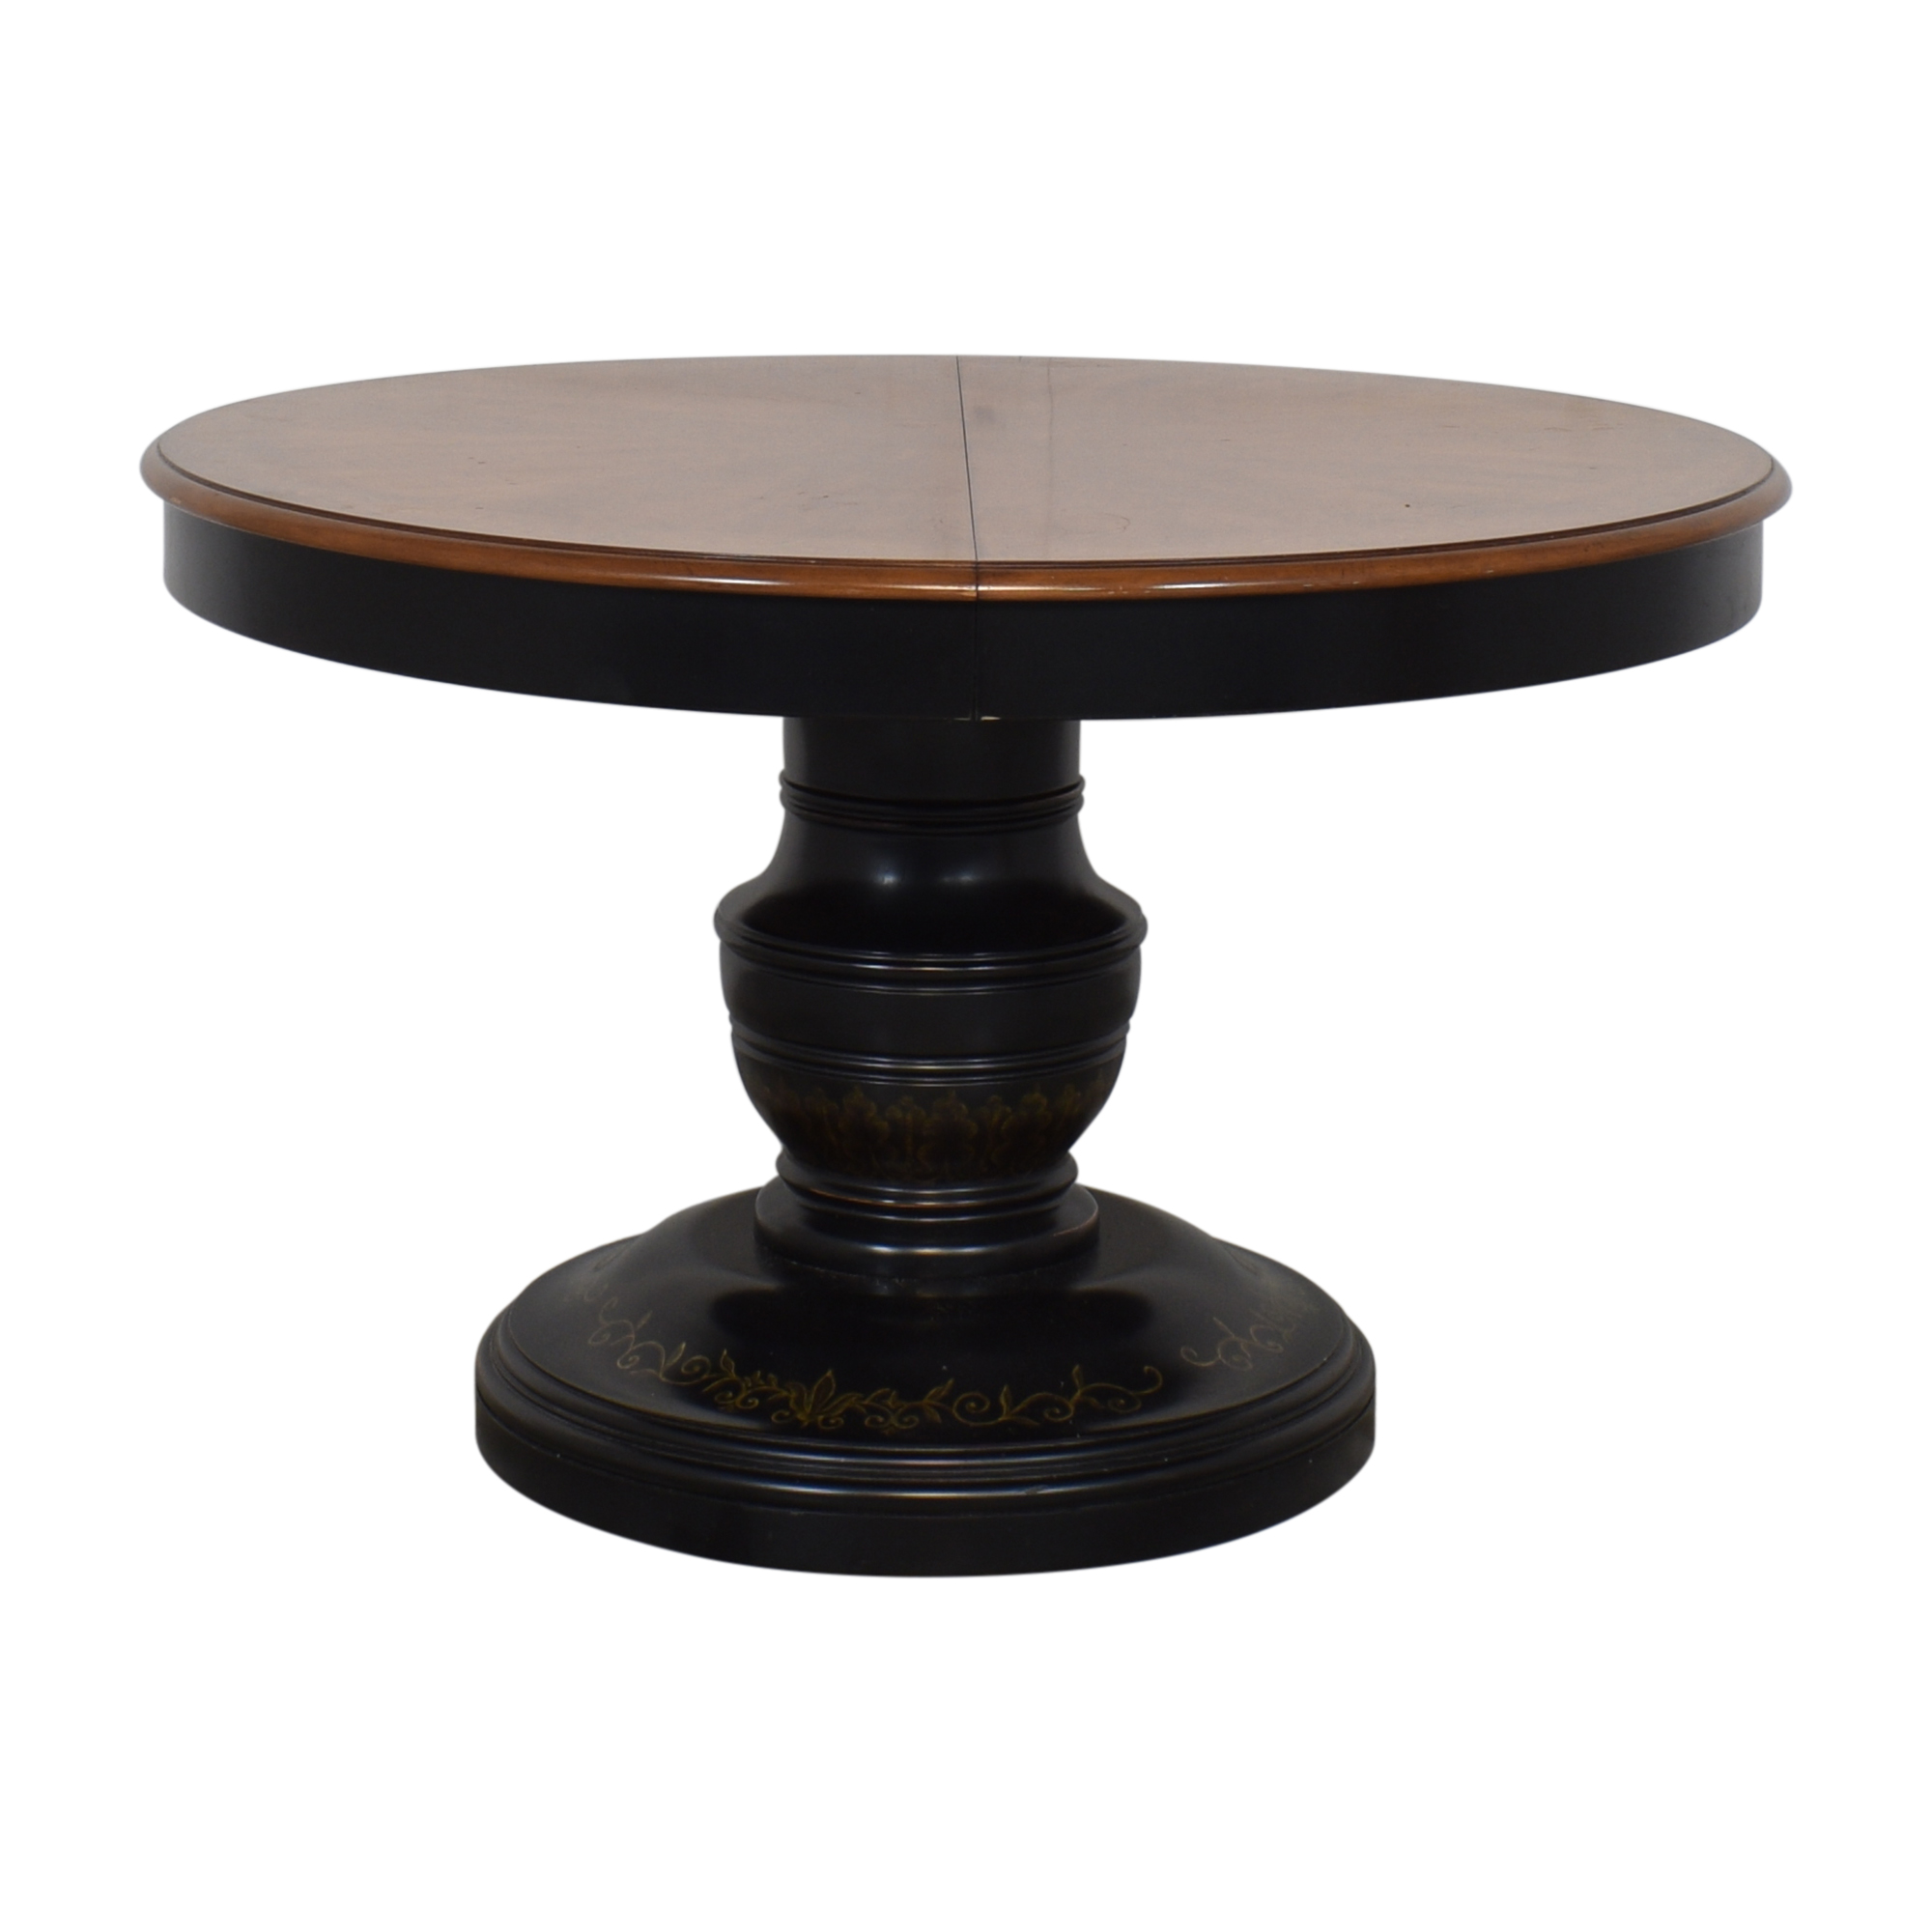 A.R.T. Furniture A.R.T. Furniture Extendable Oval Dining Table coupon